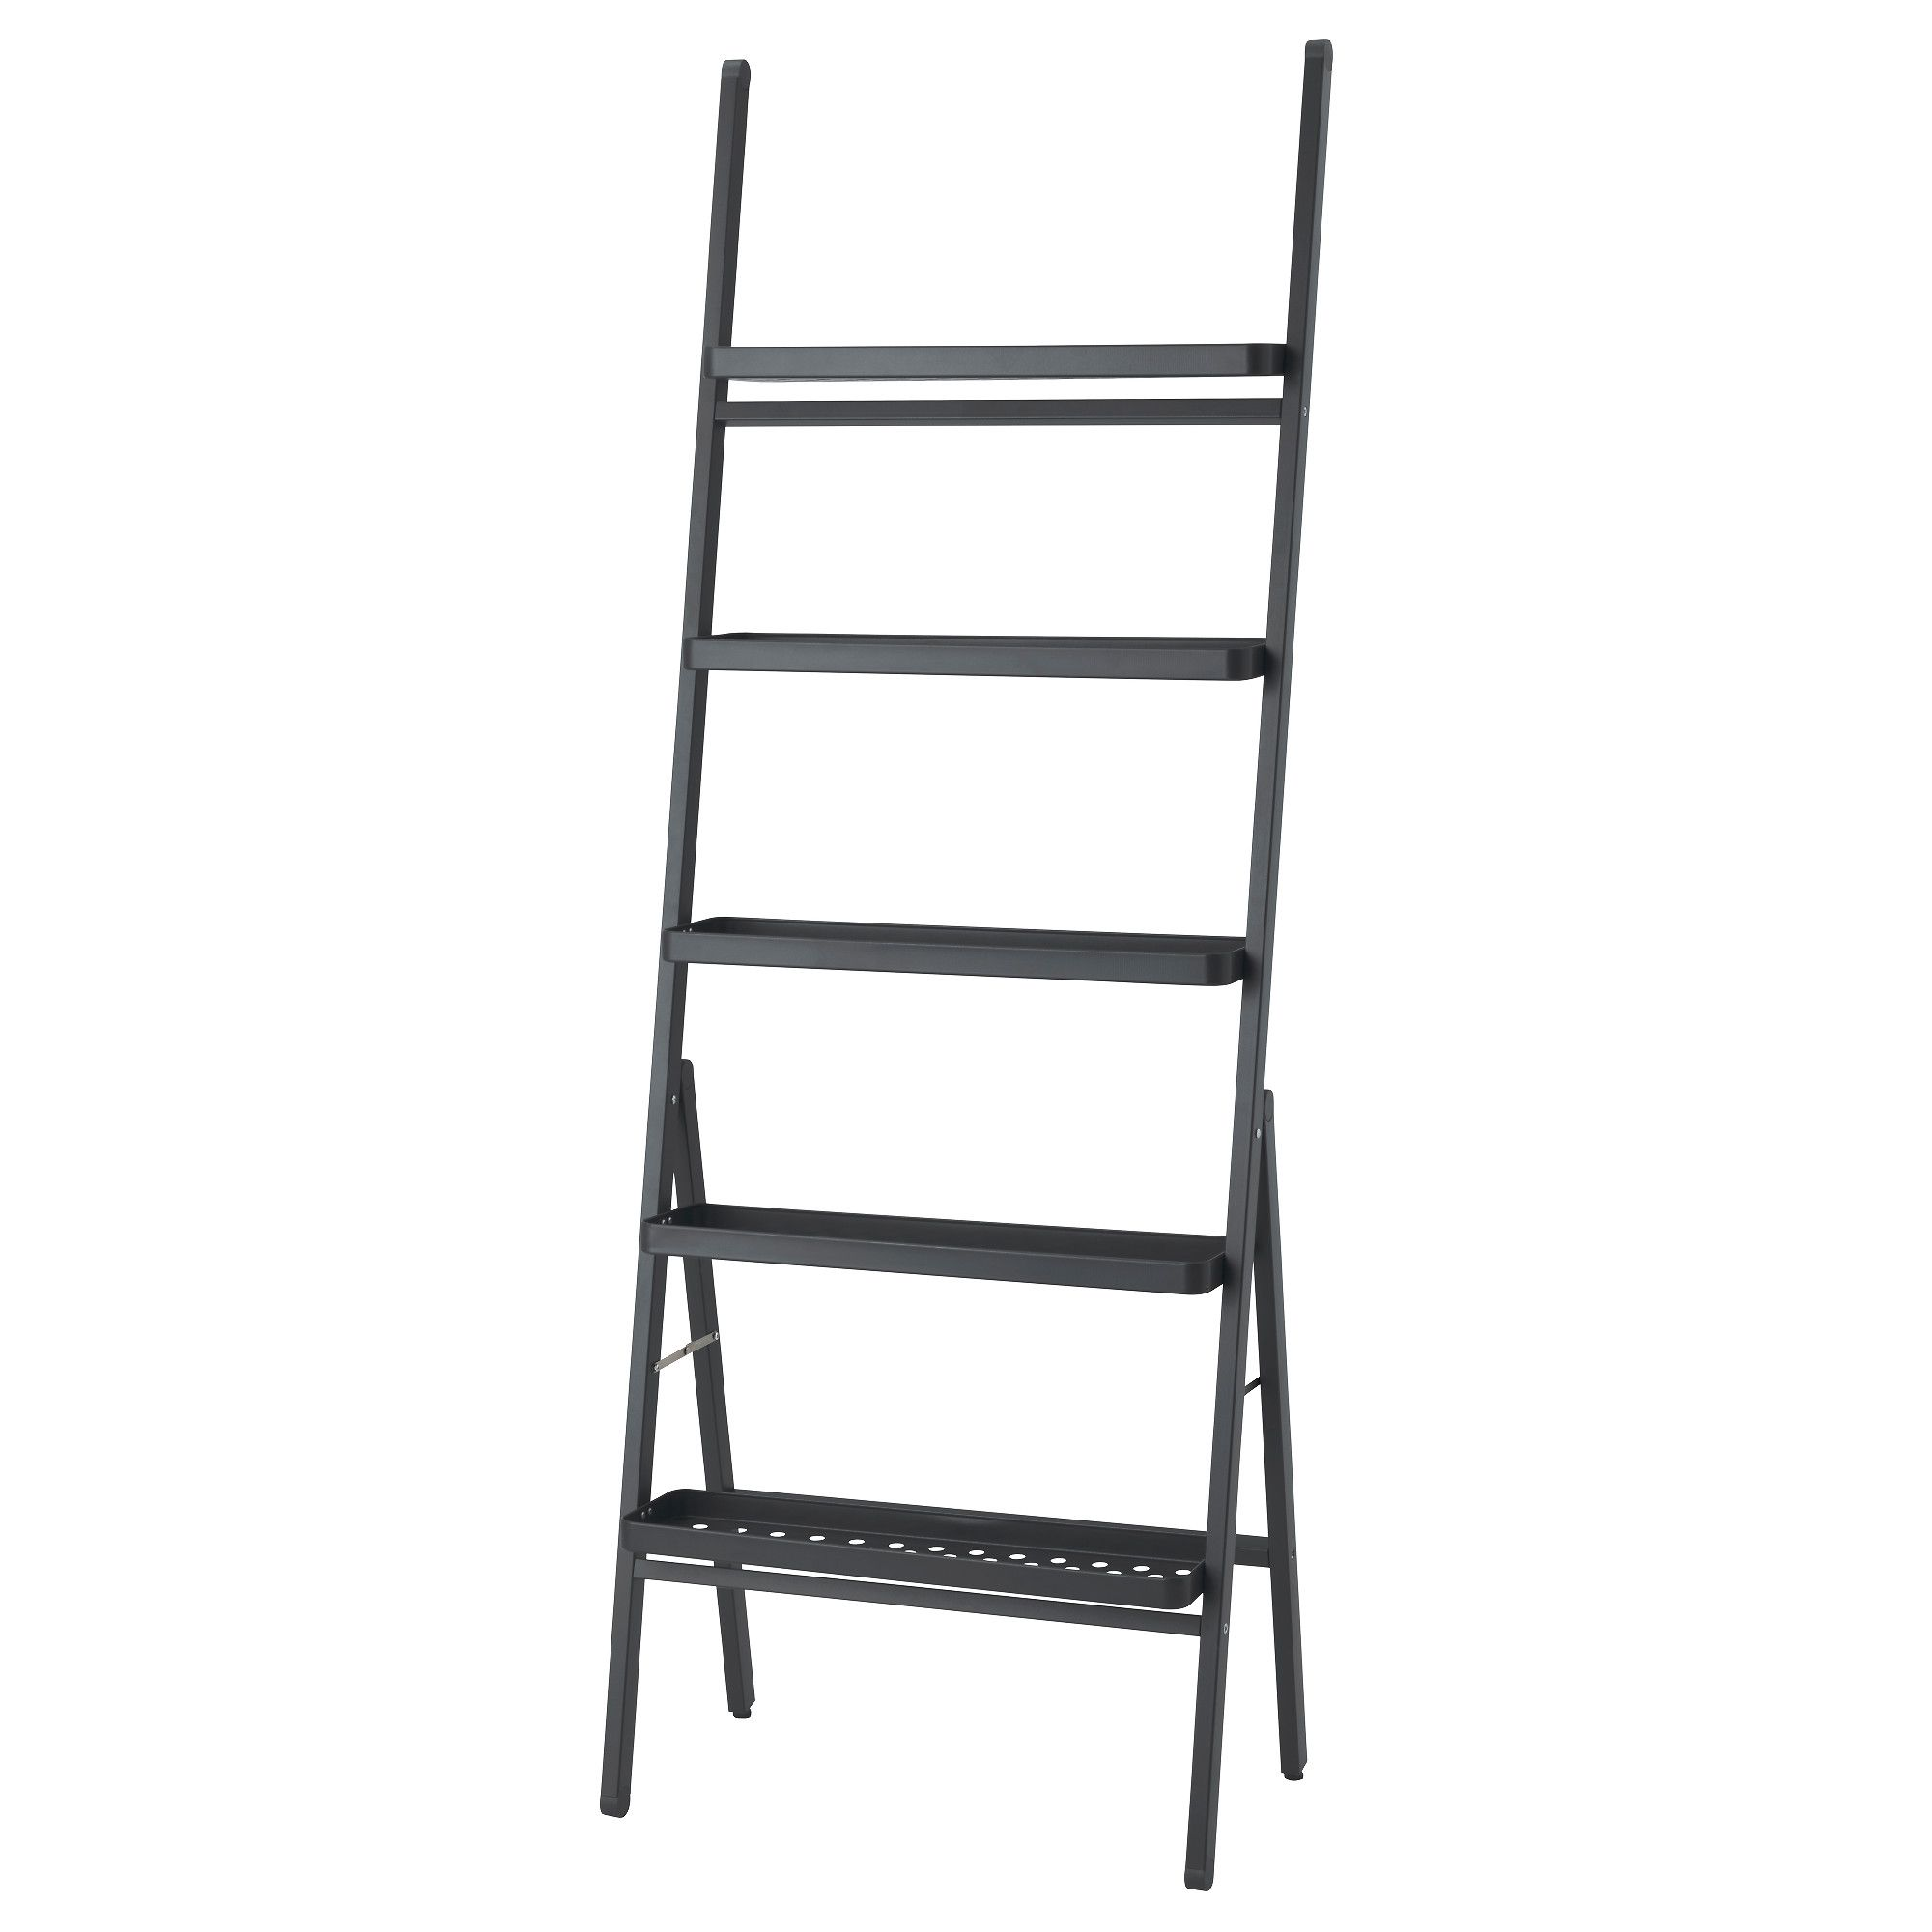 IKEA SALLADSK…L Plant stand The decorative ladder plant stand